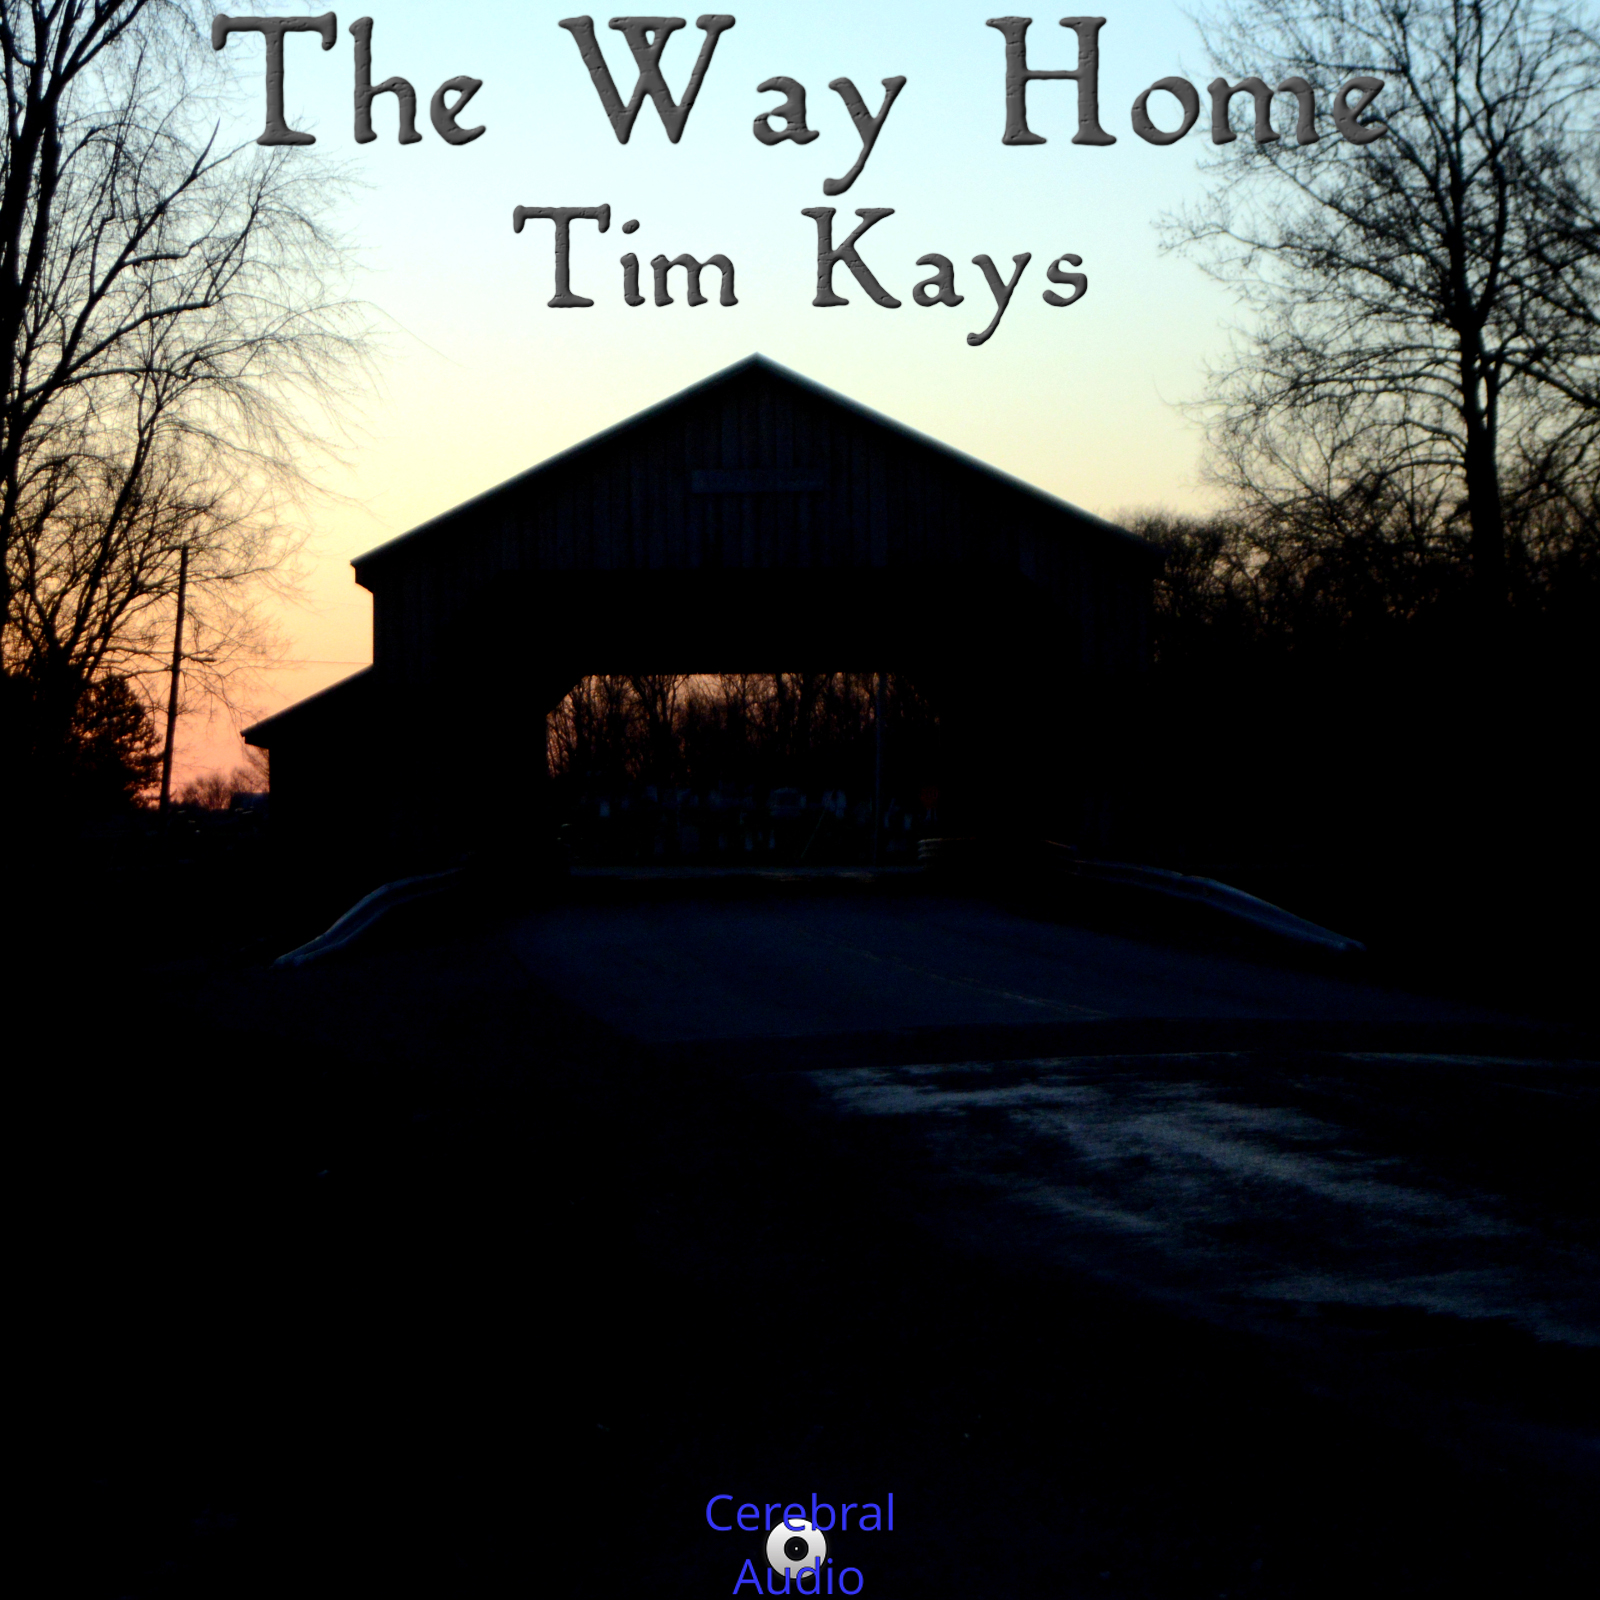 The Way Home: Signposts for the Journey